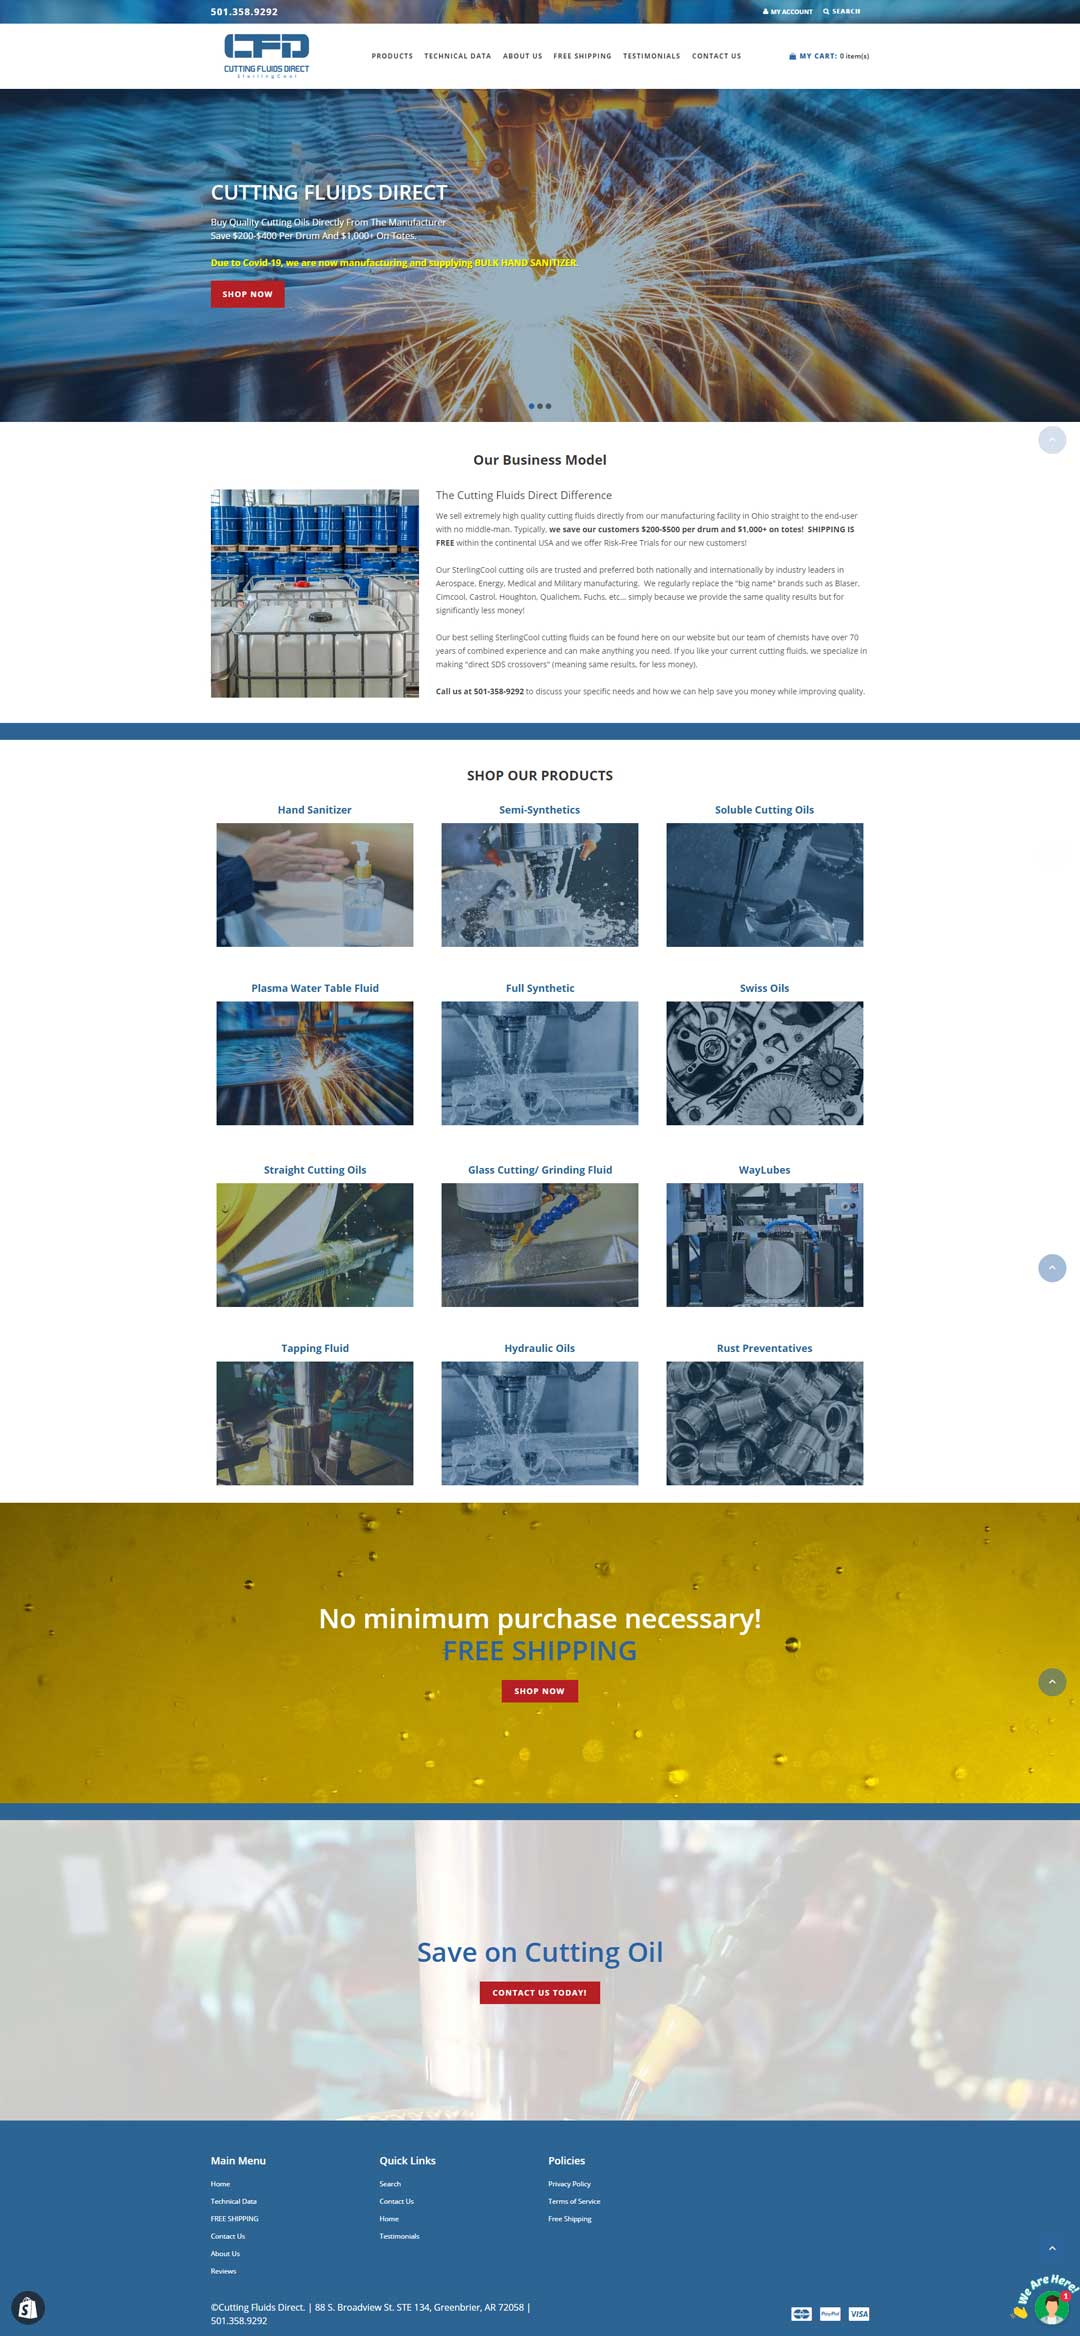 Website built for Cutting Fluids Direct